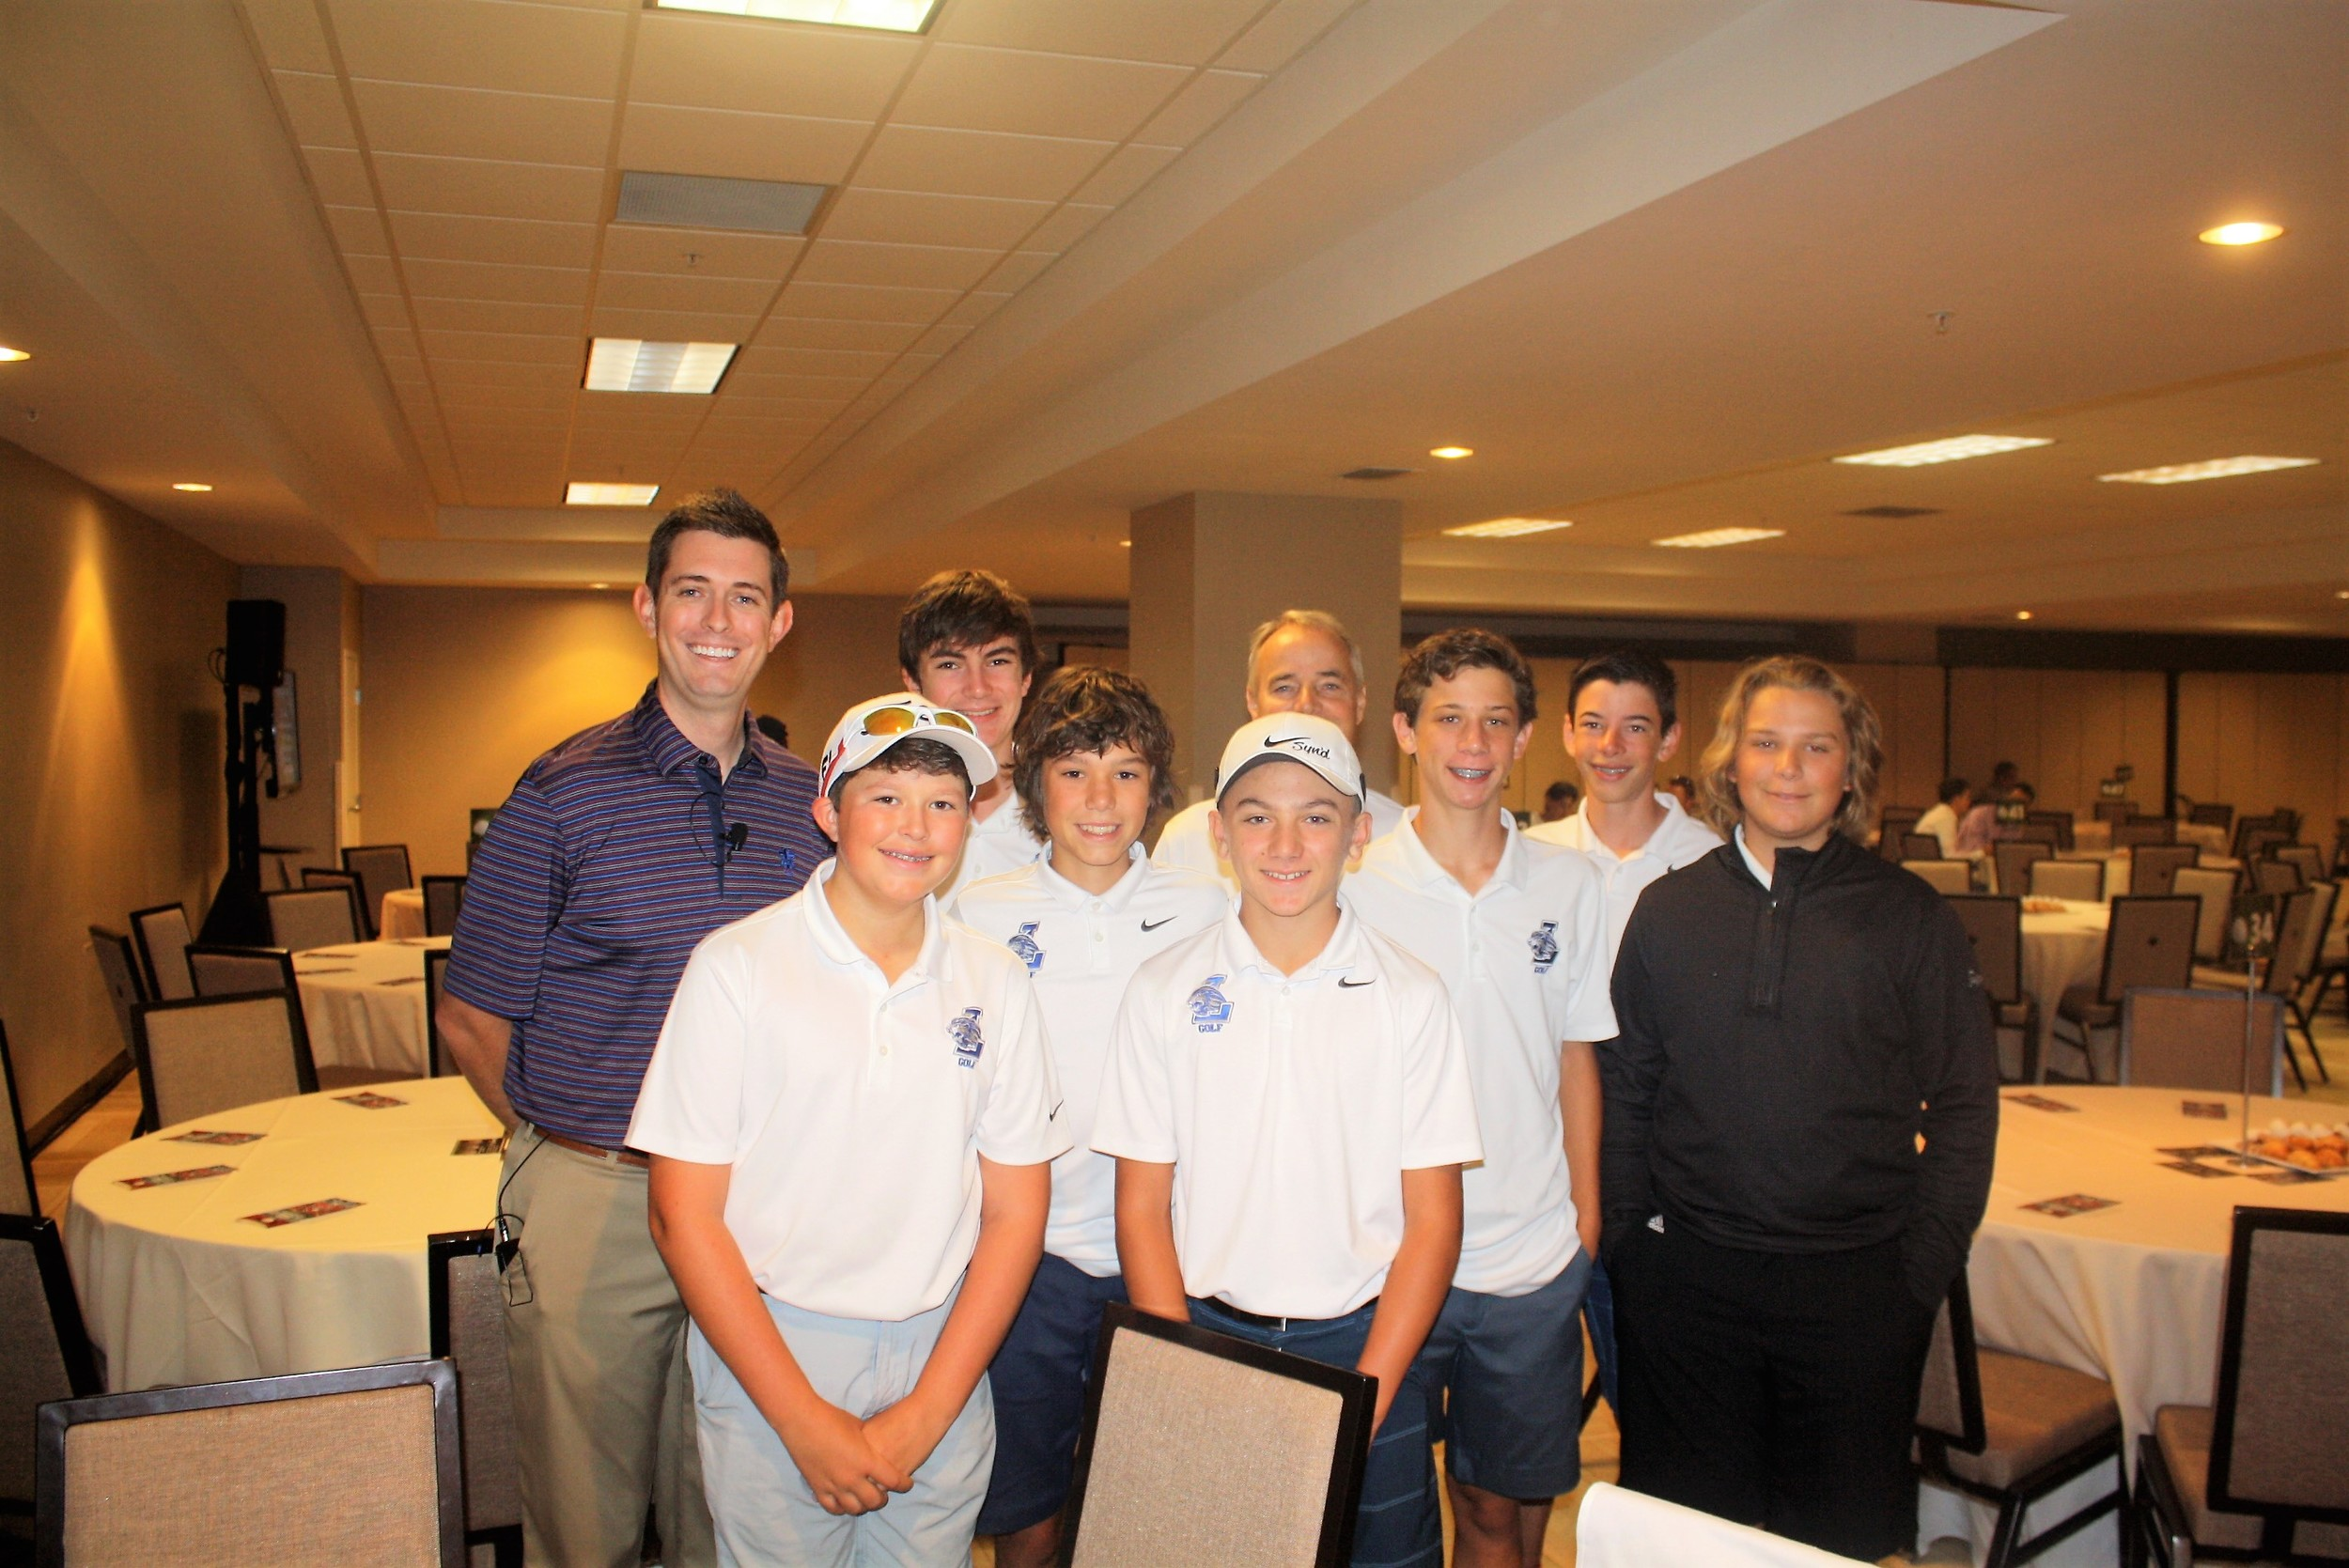 "Landrum Middle School's golf team was represented at the FCA Golf Jax ""Breakfast with the Pros."" Front: Thomas Cush, Stefan Madaffari, Lucas Slayden, Jonathan Greco and Luke Calamari. Back: FCA Golf Jax Director Matt Roop, Carter Lewis, Coach Scot Maxwell and Colin Lytle."